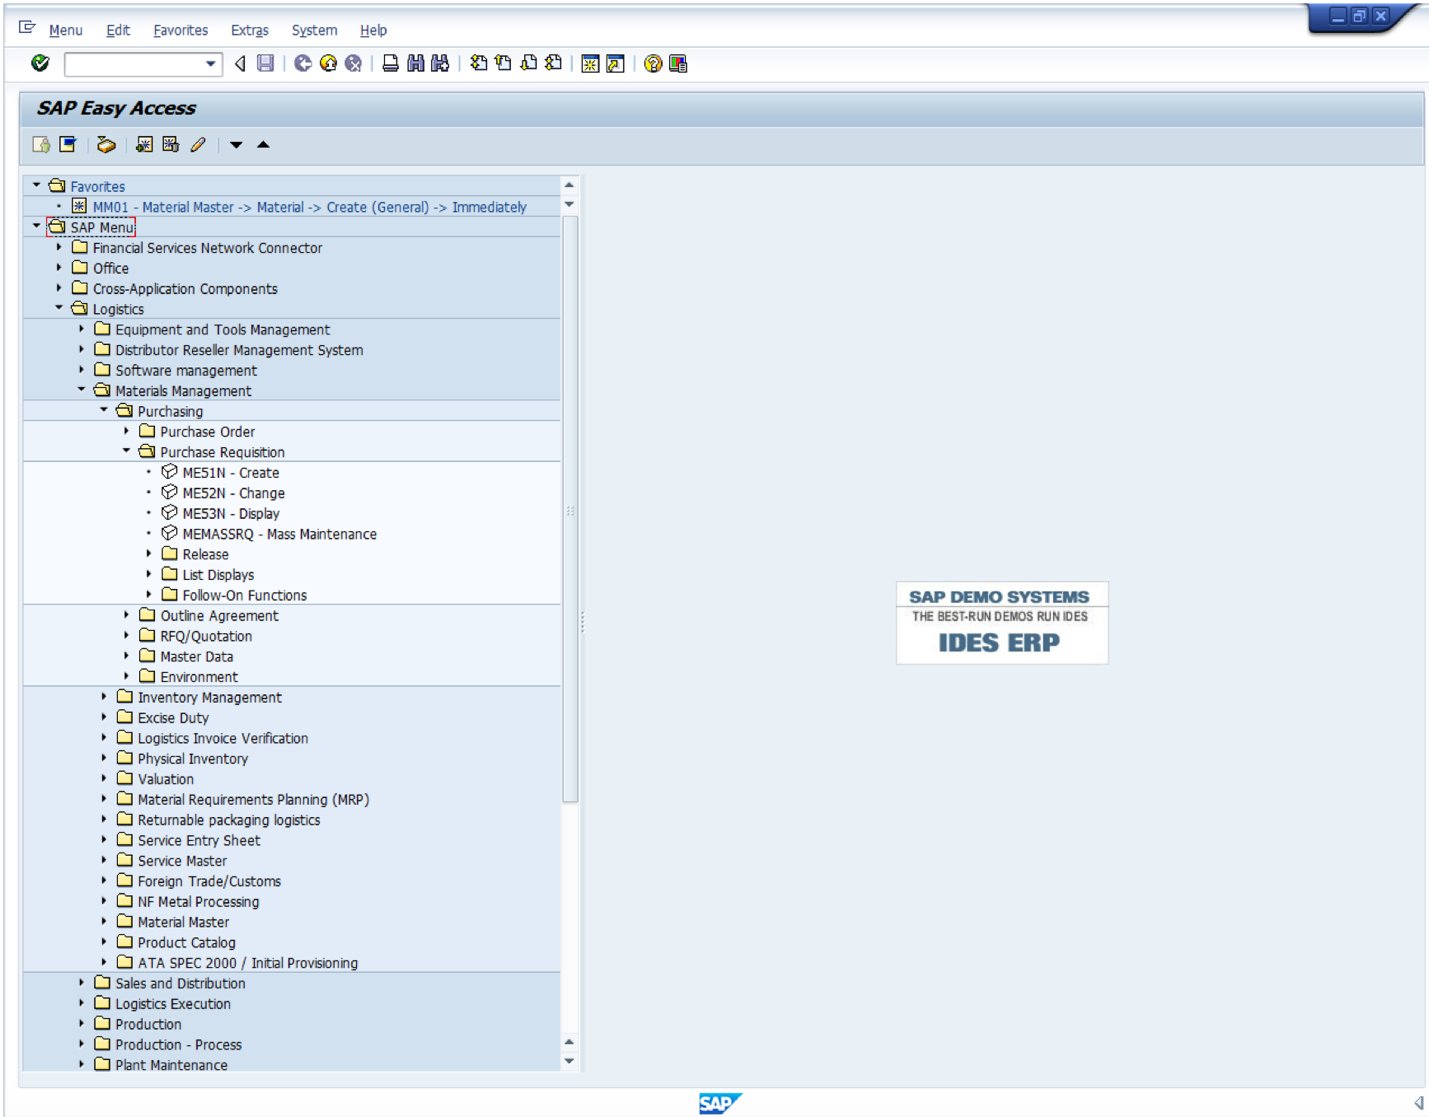 Find ME51N Transaction in SAP Menu Tree